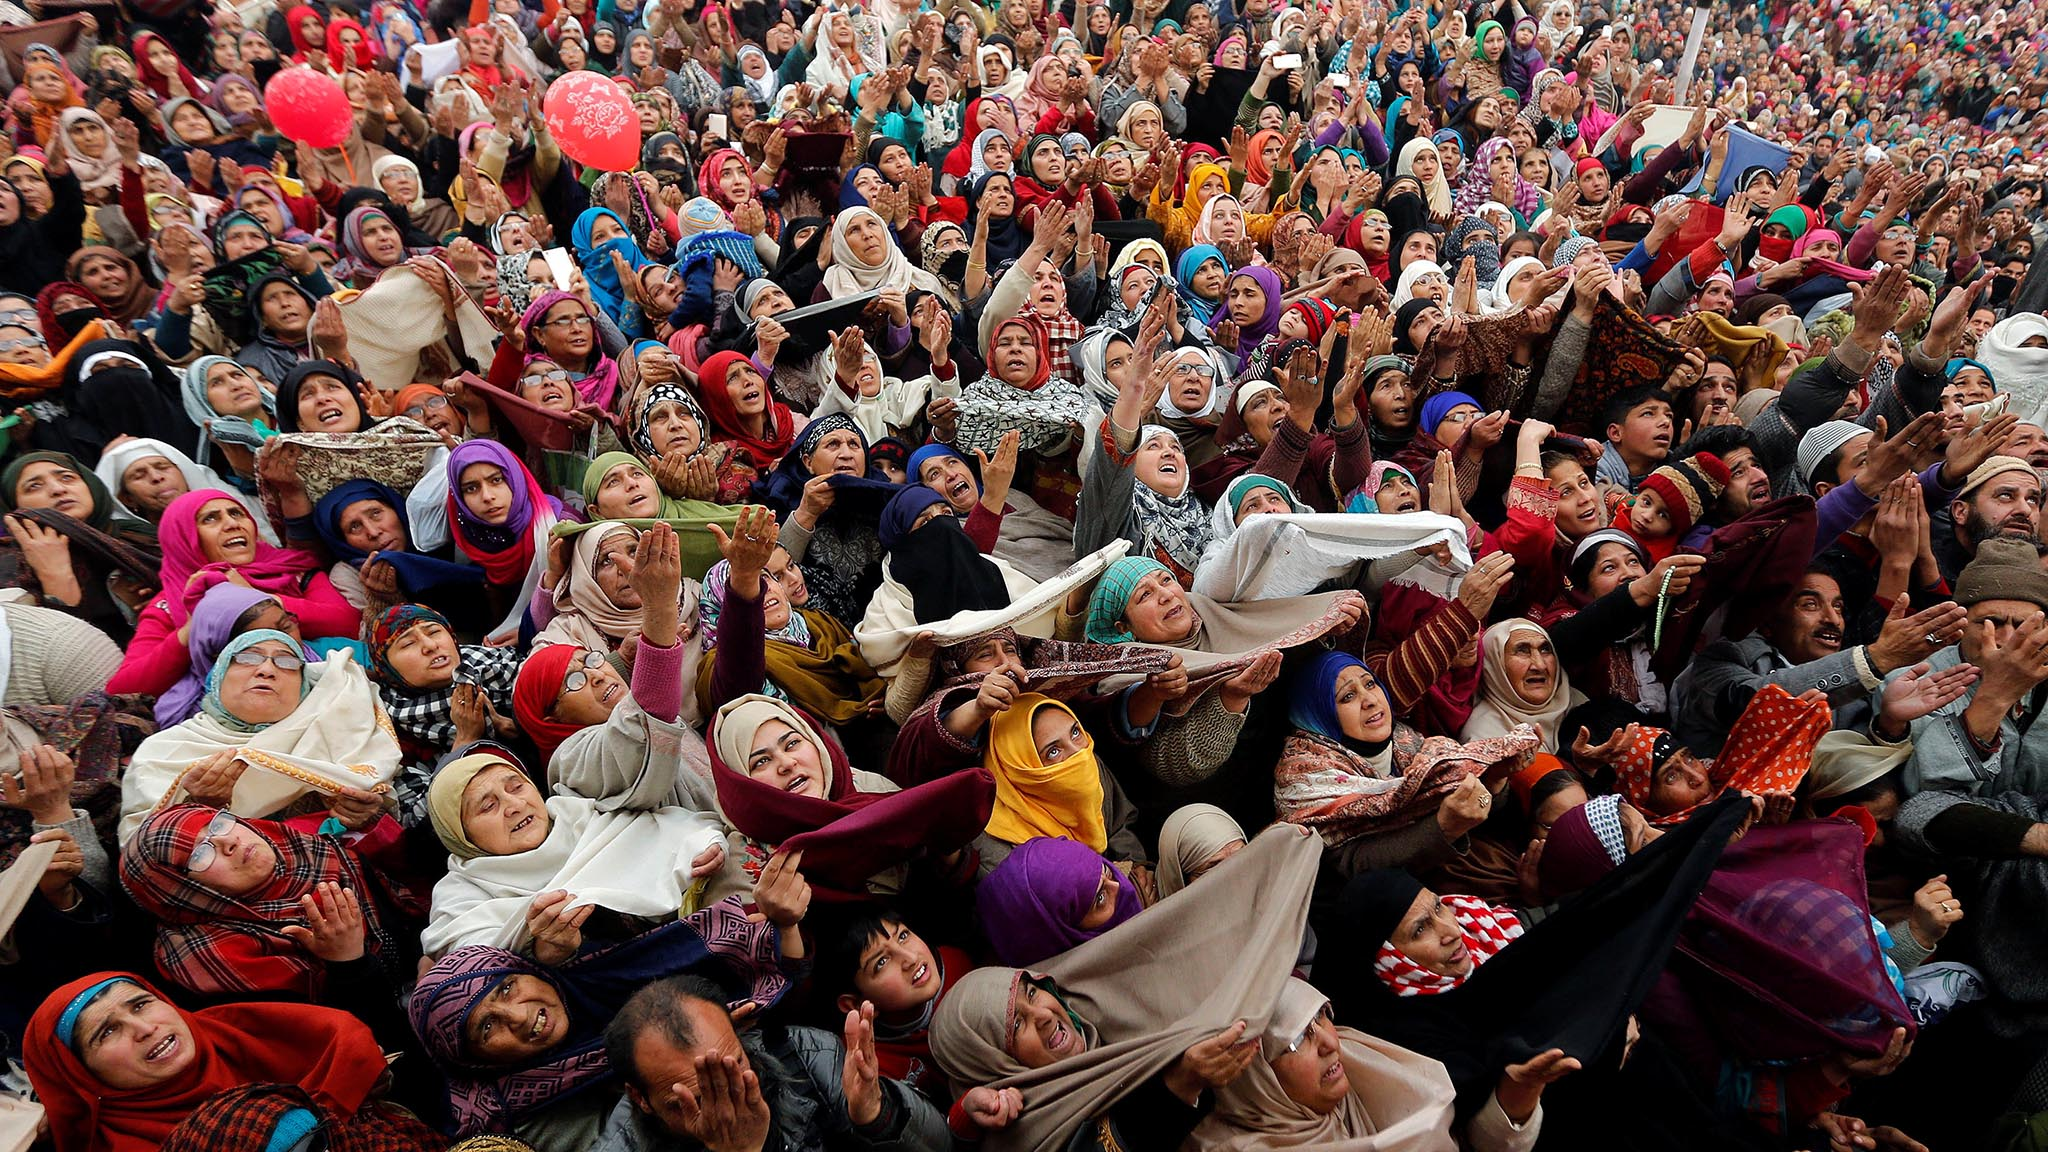 Kashmiri Muslims react upon seeing a relic believed to be a hair from the beard of Prophet Mohammed, being displayed on the Friday following the festival of Eid-e-Milad-ul-Nabi, the birthday anniversary of the prophet, at the Hazratbal shrine in Srinagar